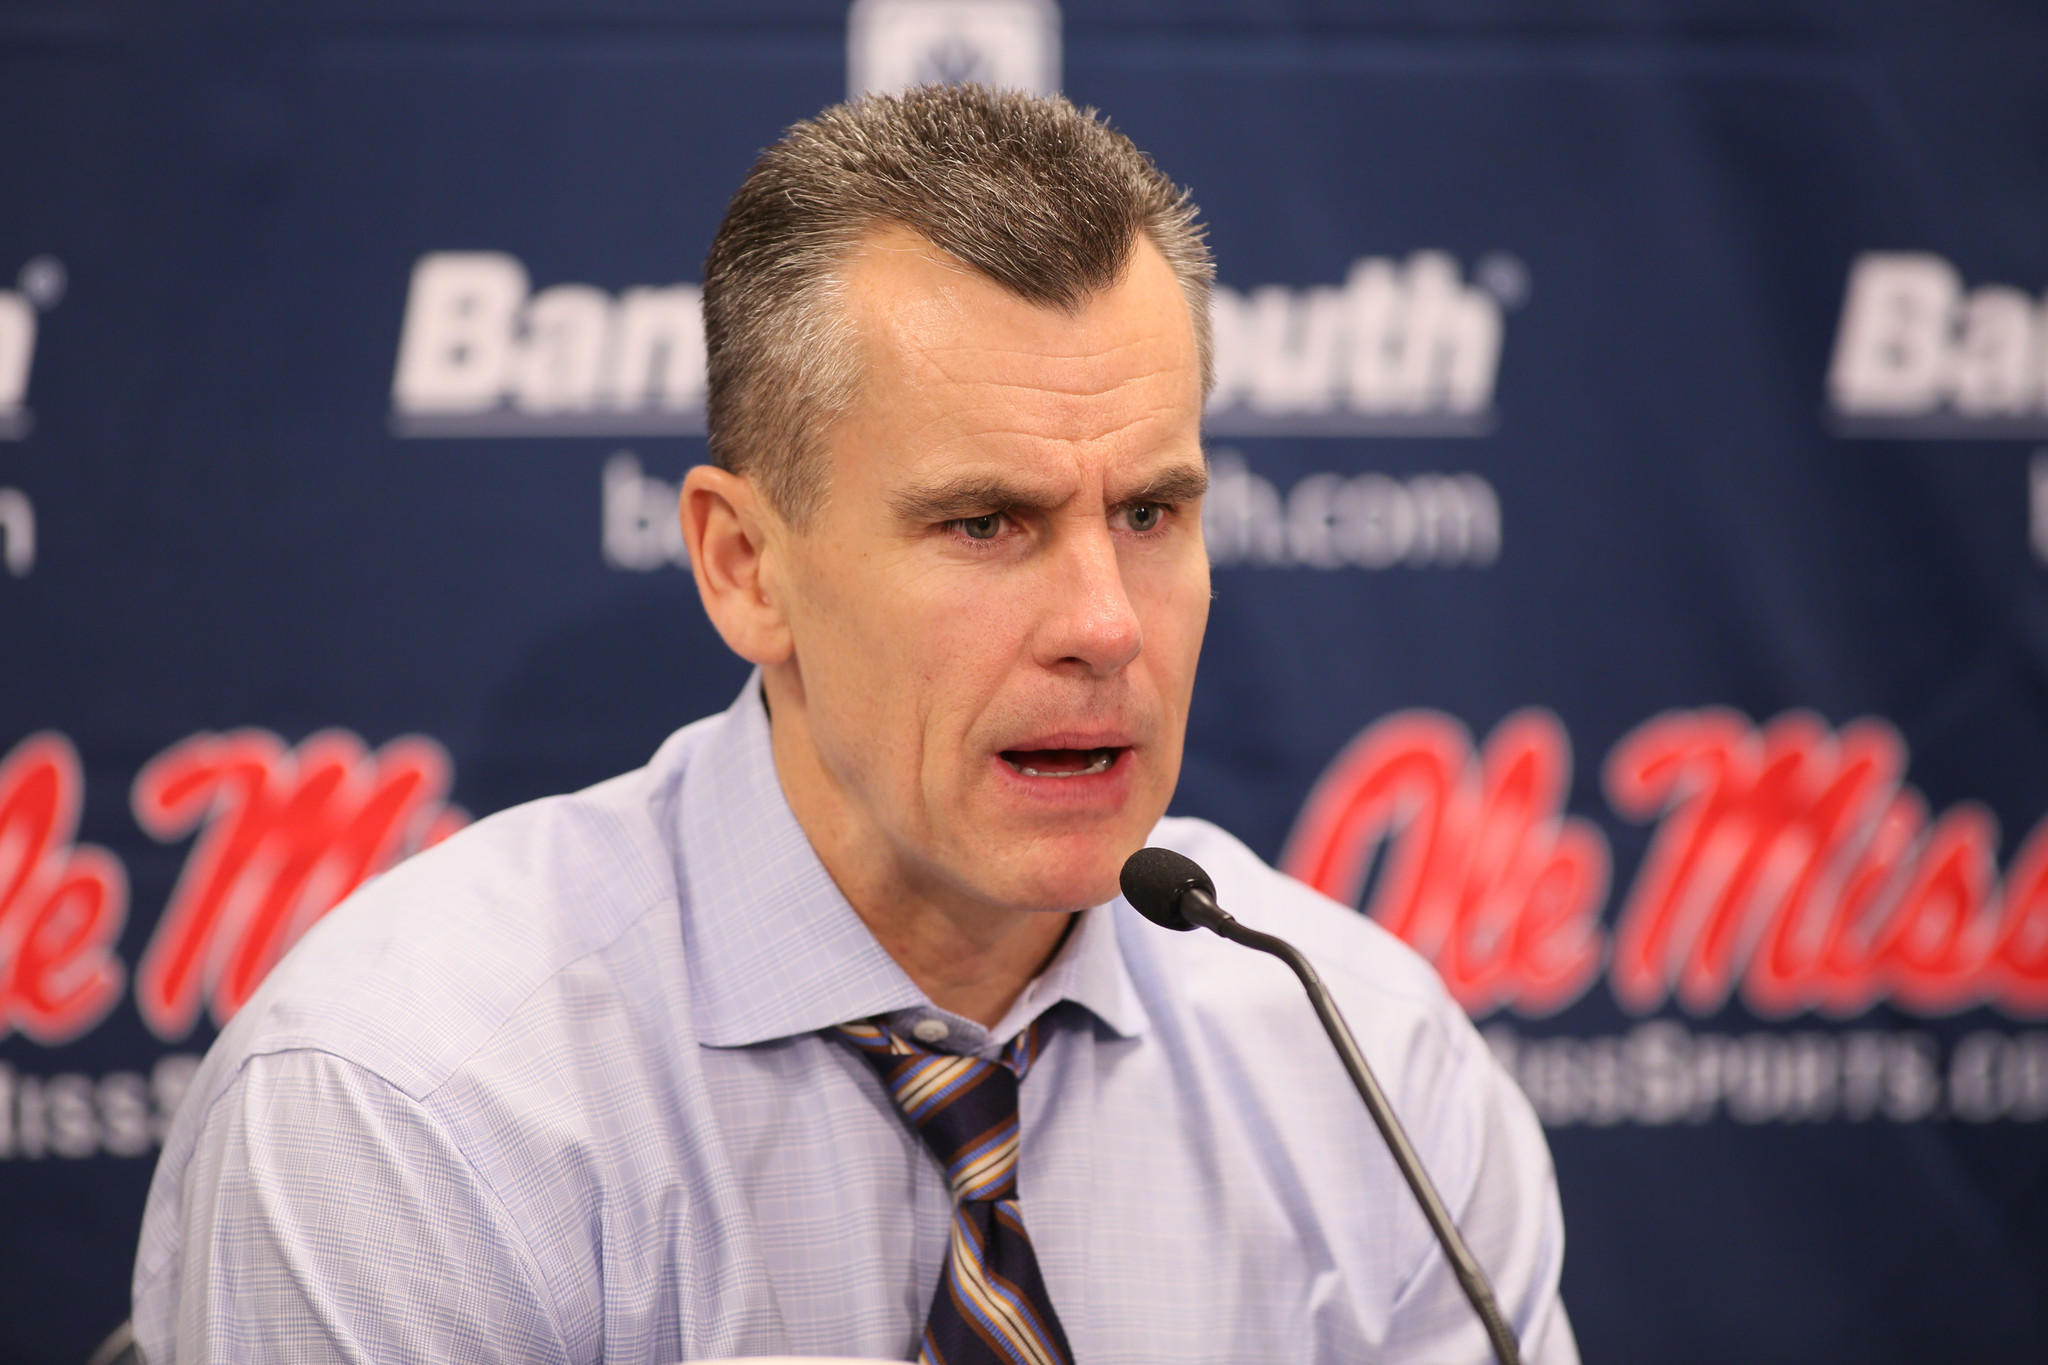 Florida coach Billy Donovan speaks to the media after the game against Mississippi on Saturday.